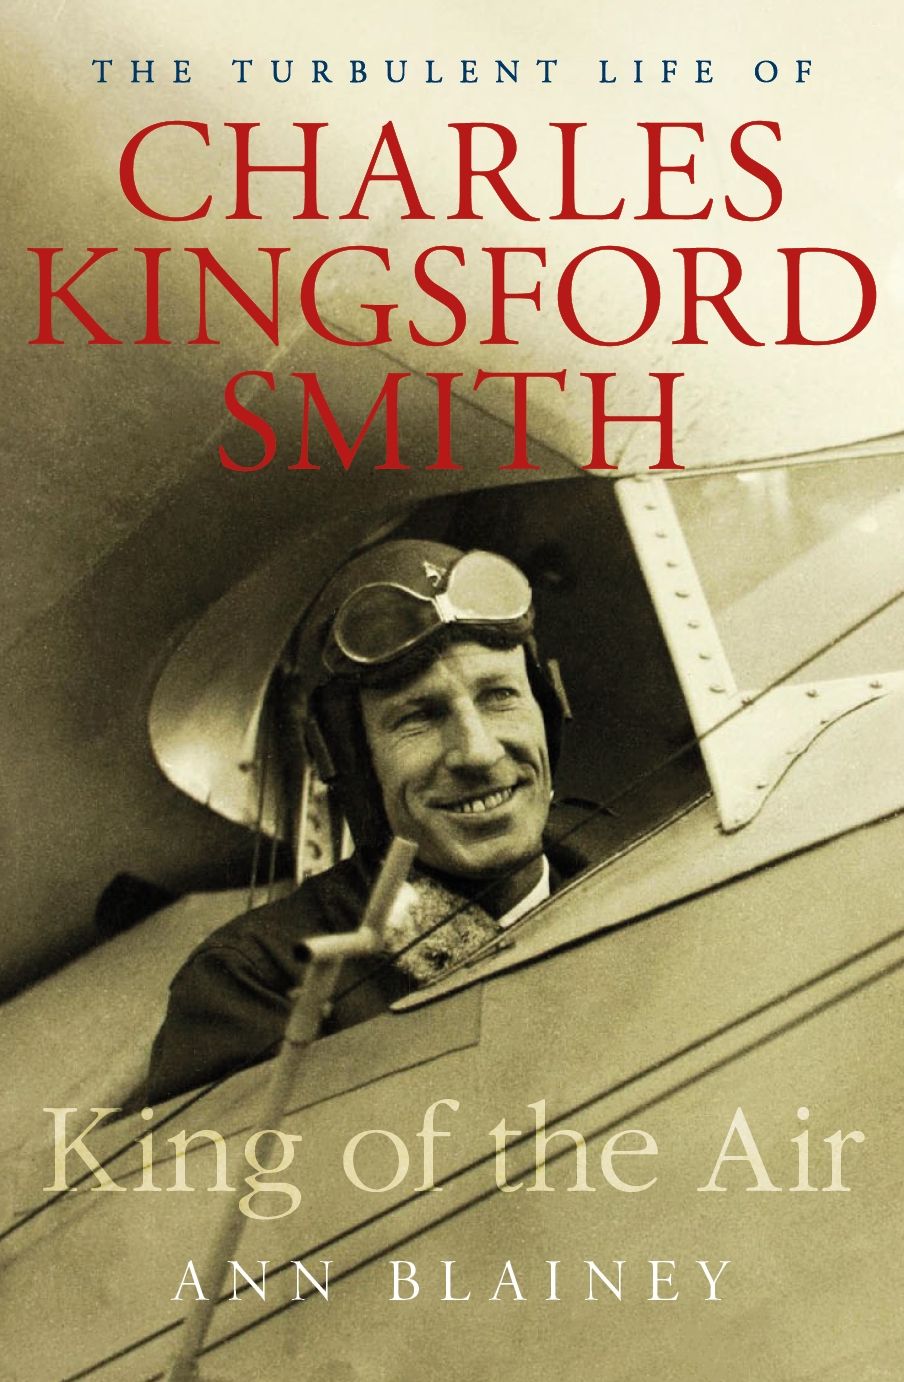 King of the AirThe Turbulent Life of Charles Kingsford Smith